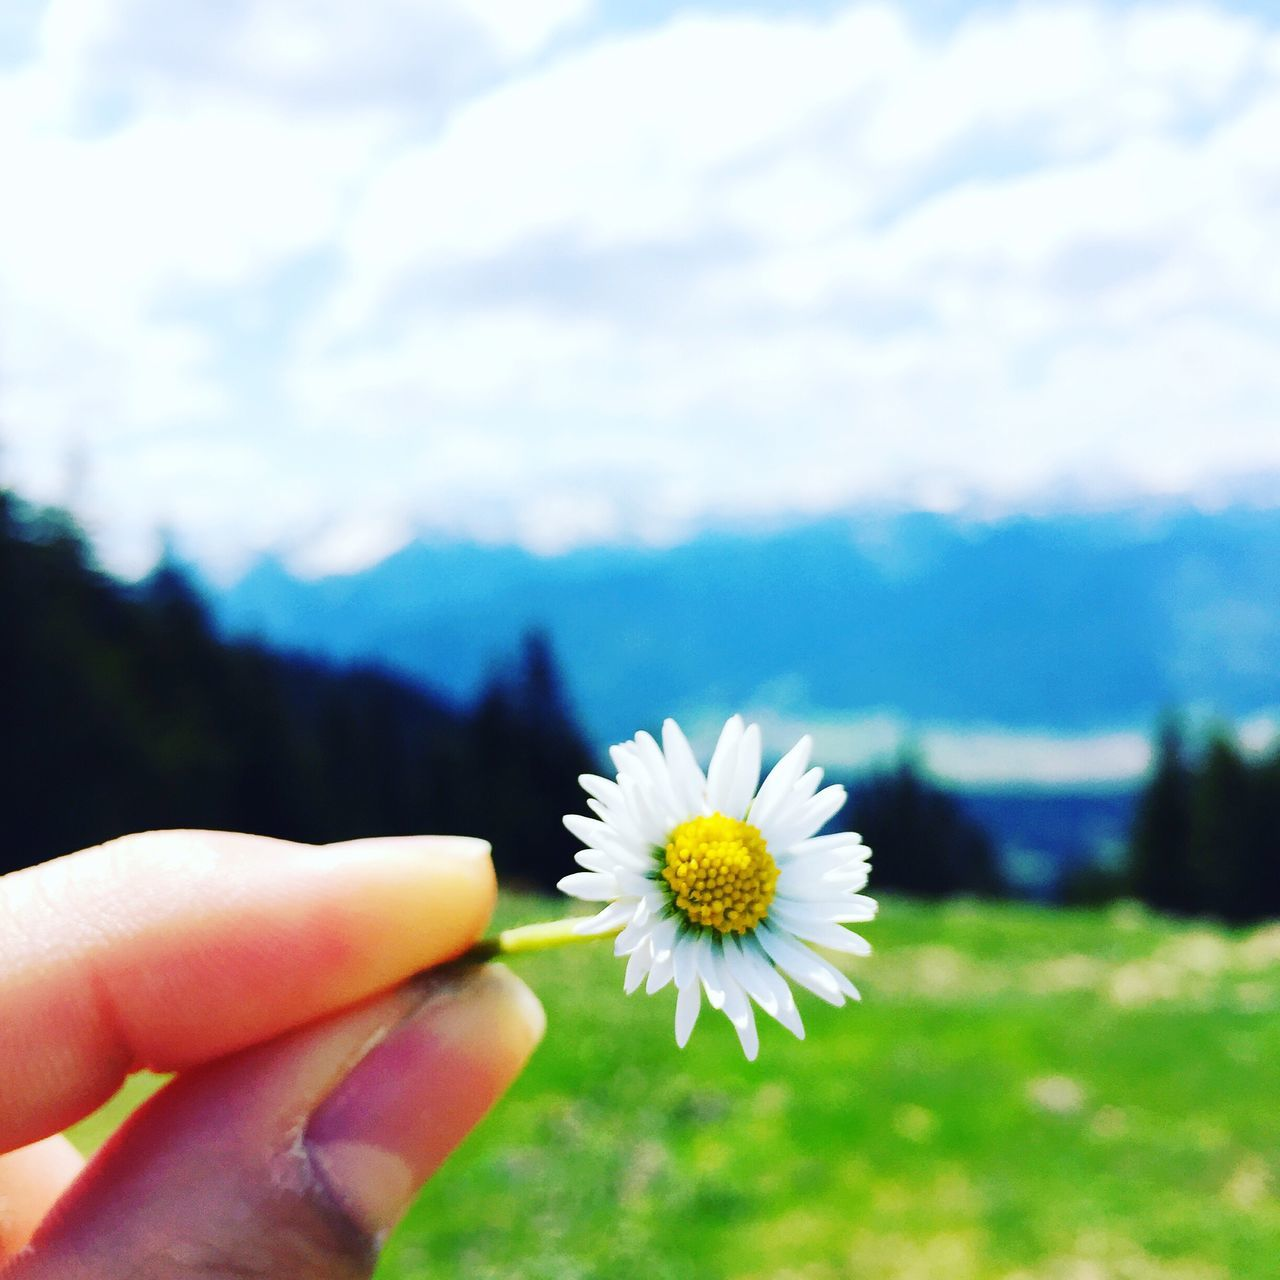 human hand, flower, nature, human body part, beauty in nature, one person, holding, fragility, real people, outdoors, petal, day, freshness, close-up, flower head, focus on foreground, growth, sky, people